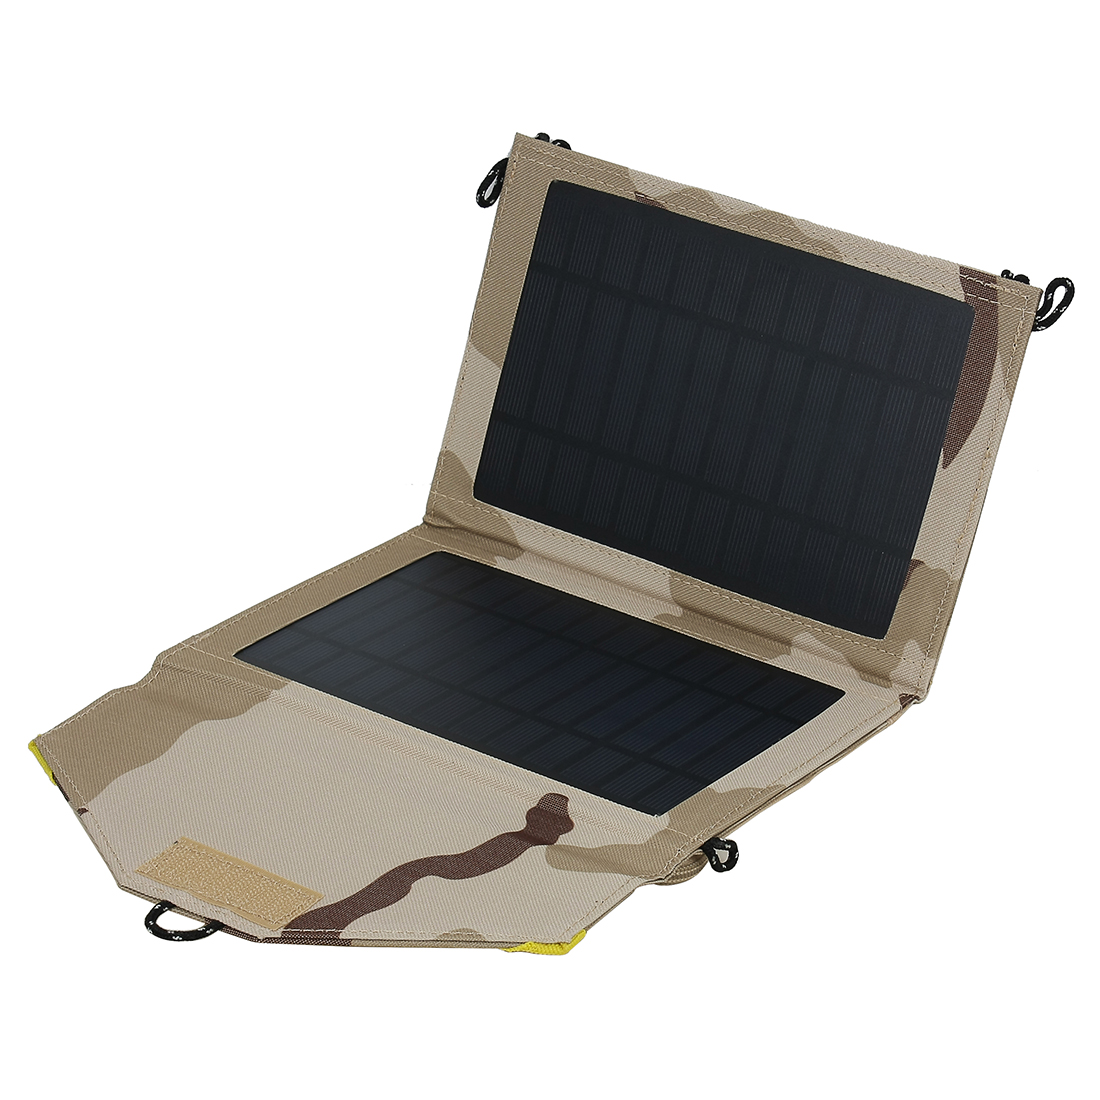 7W One Ports USB Foldable Solar Panel Charger for Smart Phone Portable Pad More Camouflage